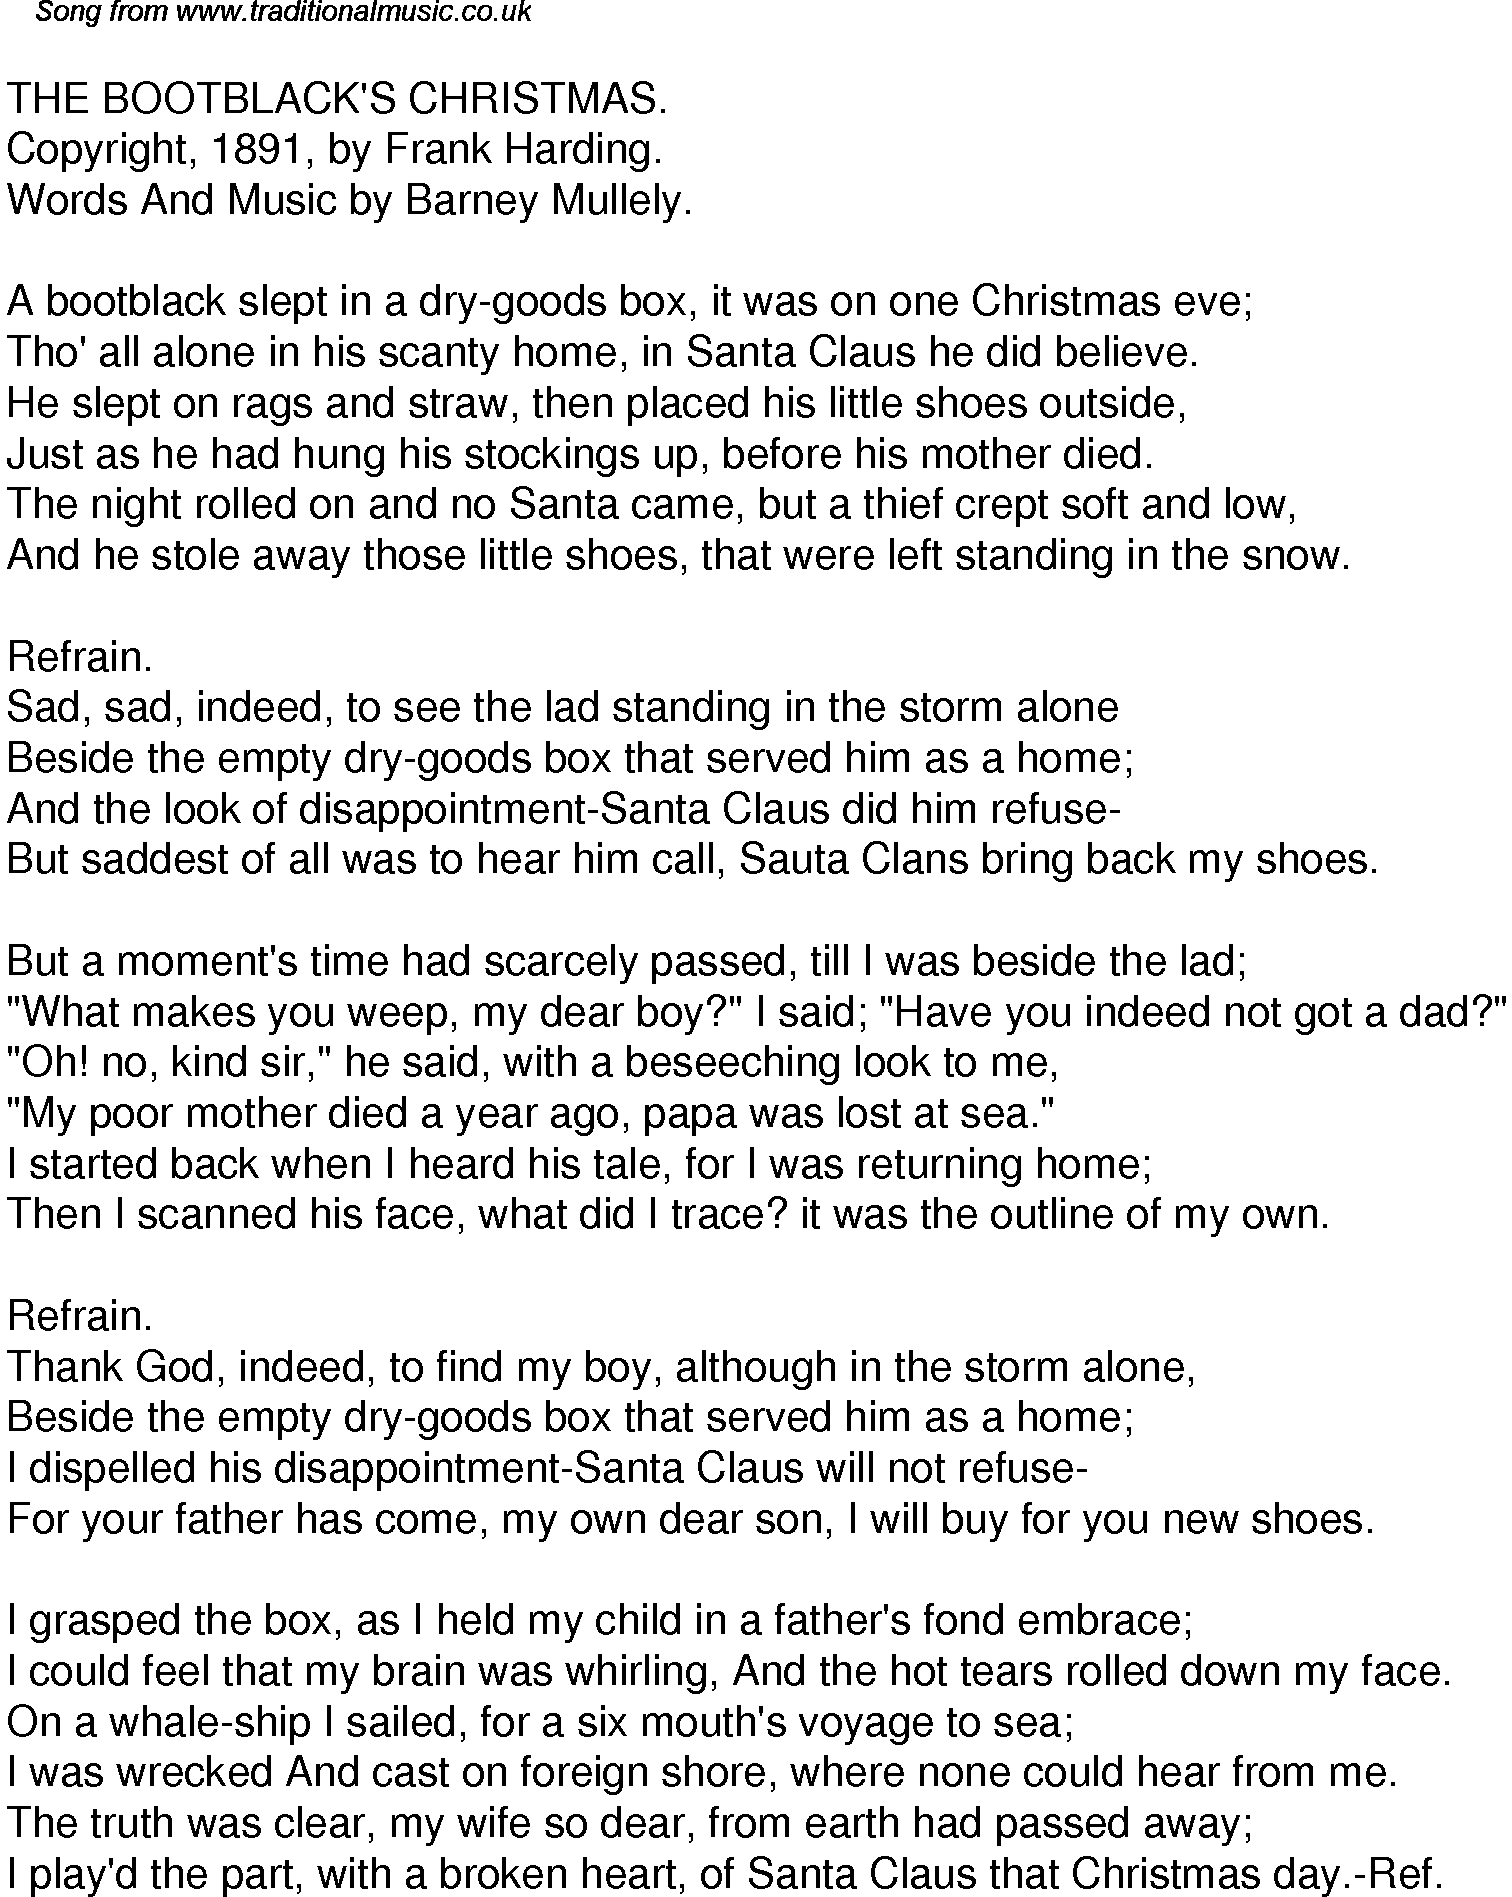 Old Time Song Lyrics for 35 The Bootblacks Christmas